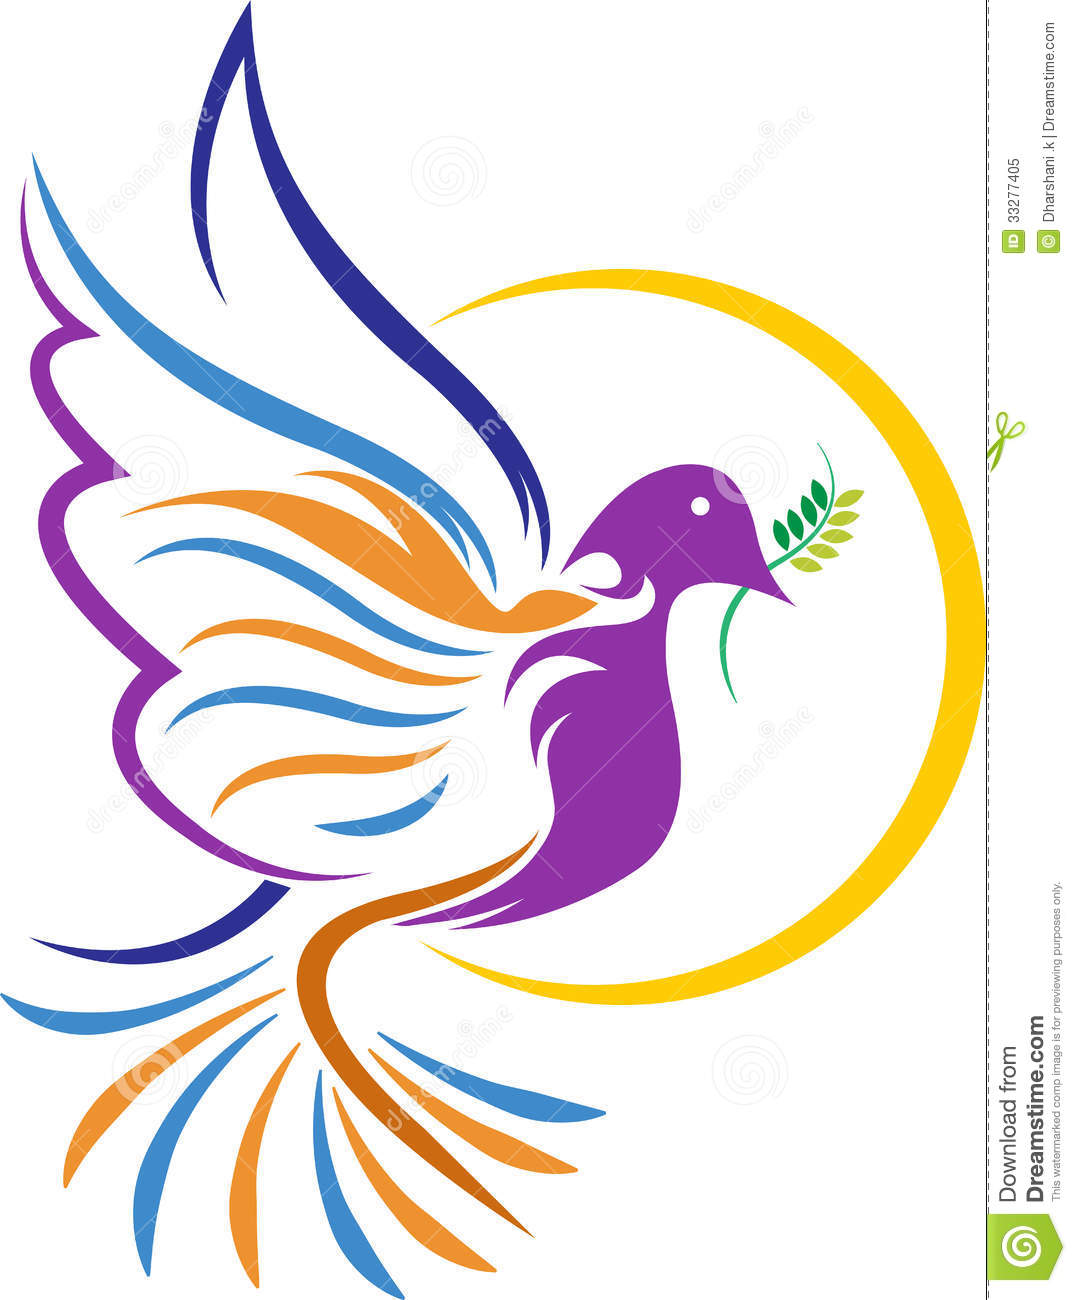 Star background vector download free vector art stock graphics - Dove Logo Royalty Free Stock Photo Image 33277405